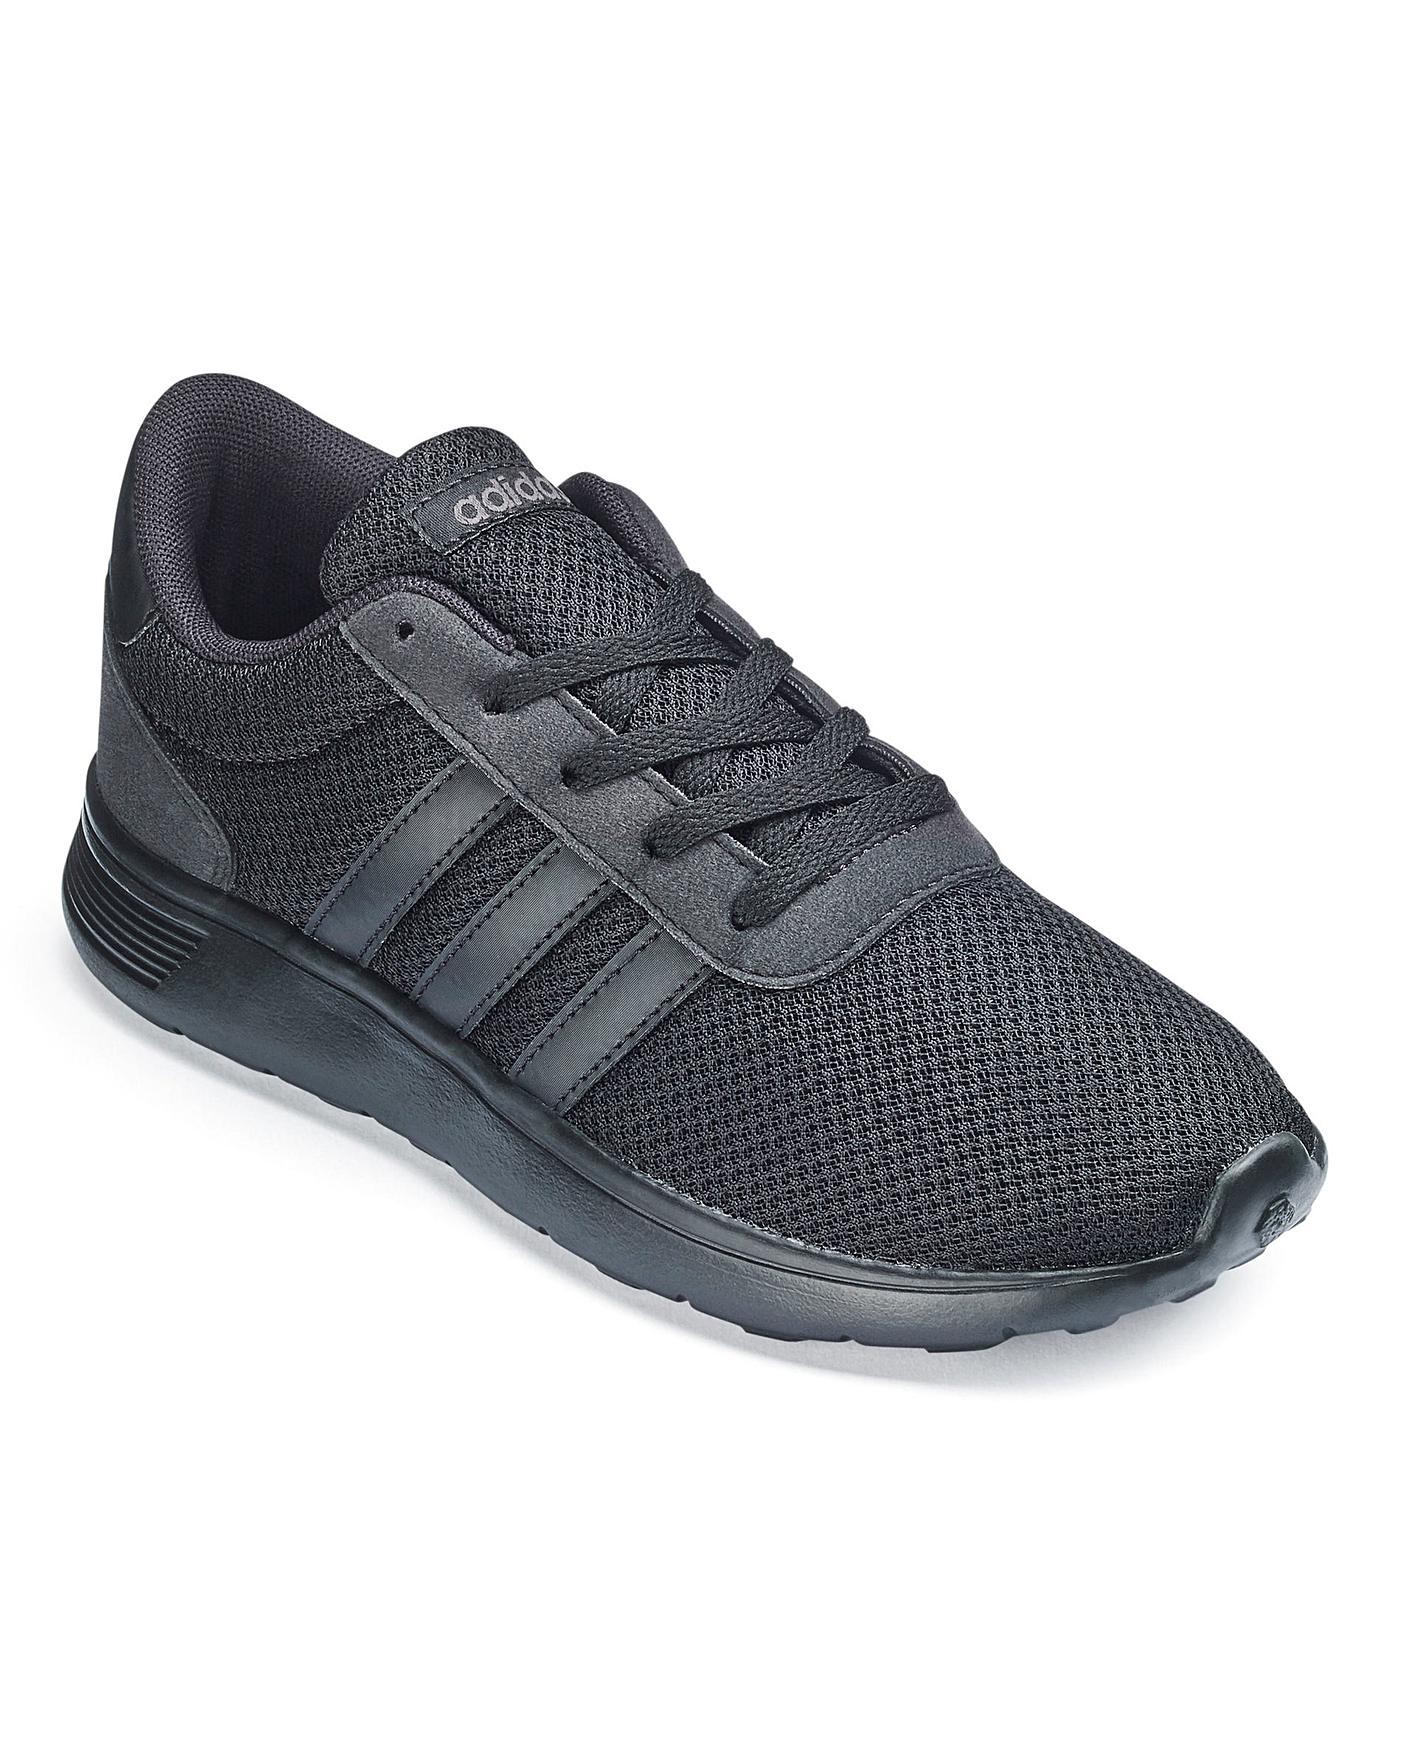 4abae5b76 Adidas Lite Racer Childrens Trainers